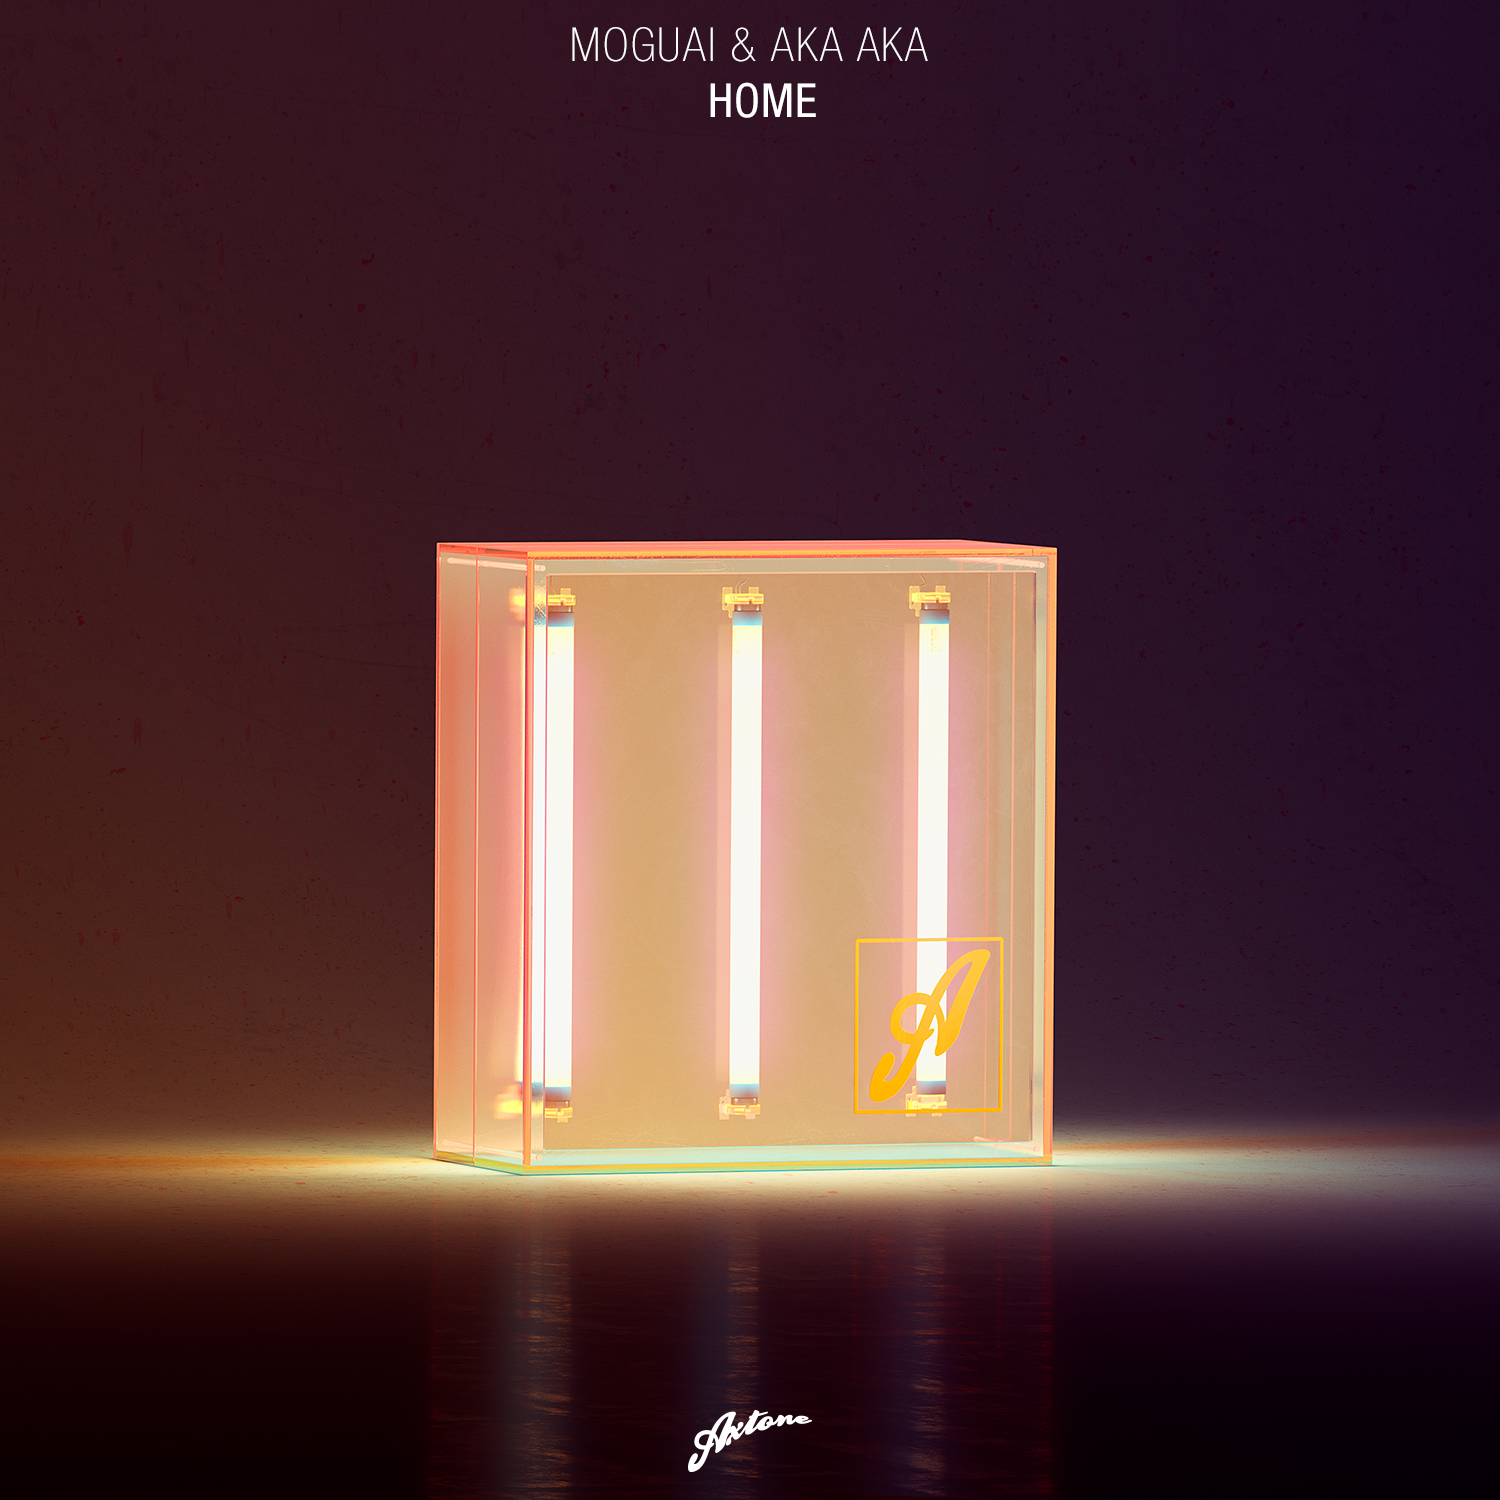 home_1500.png